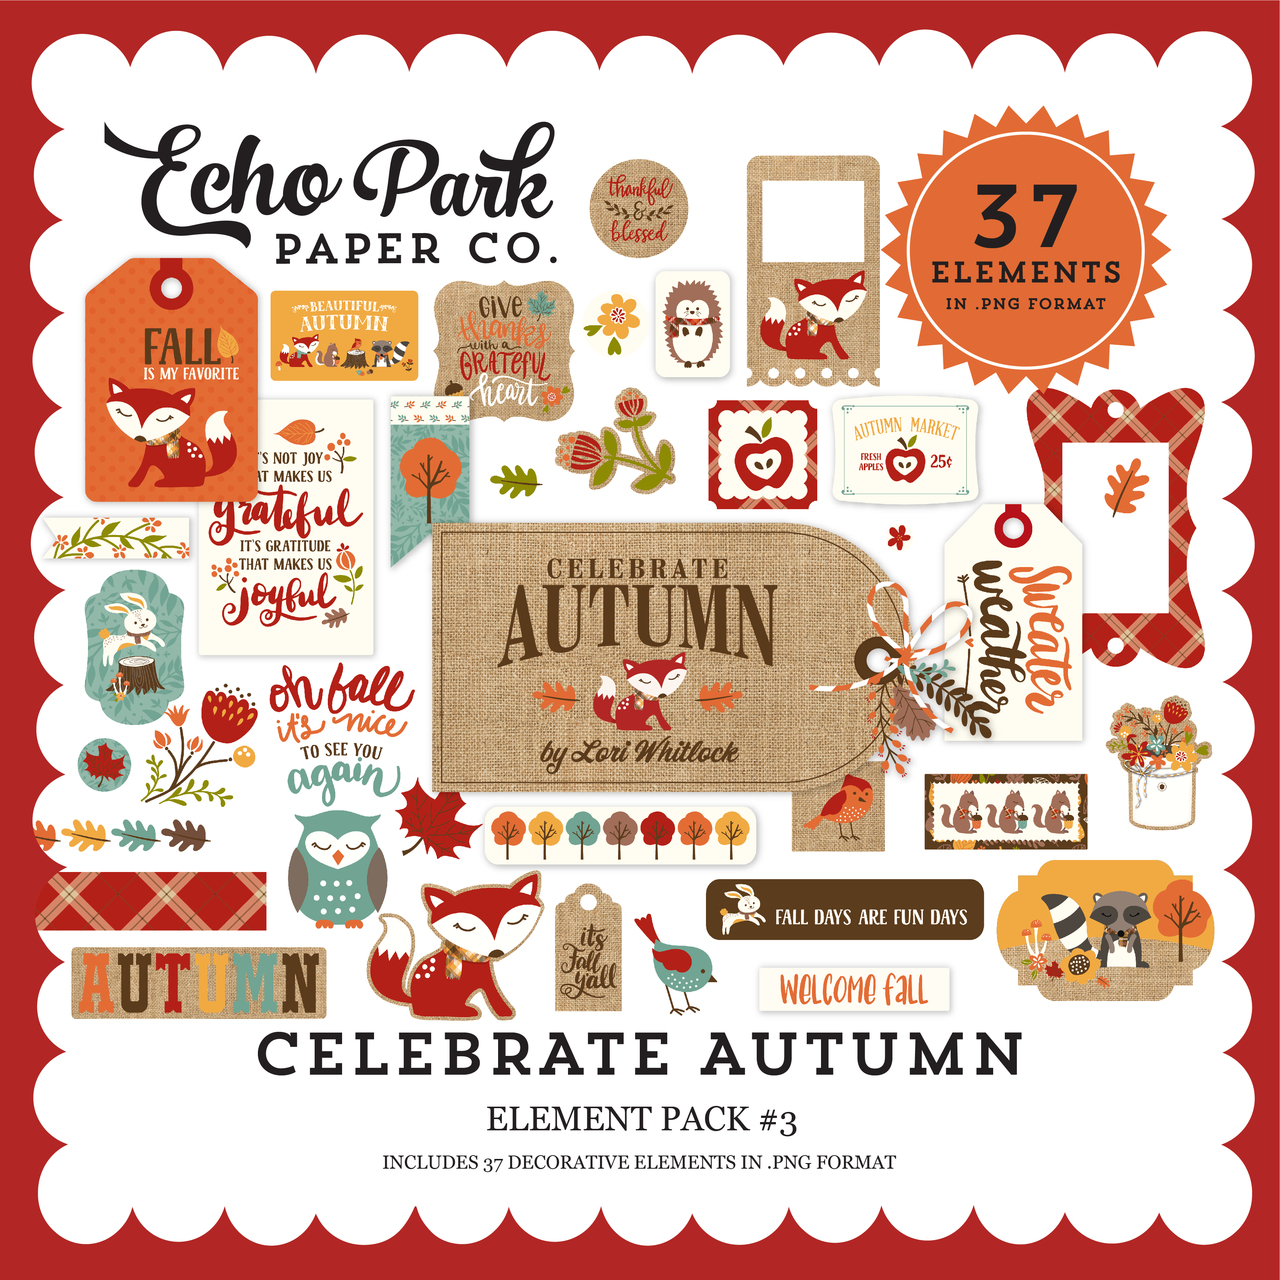 Celebrate Autumn Element Pack #3